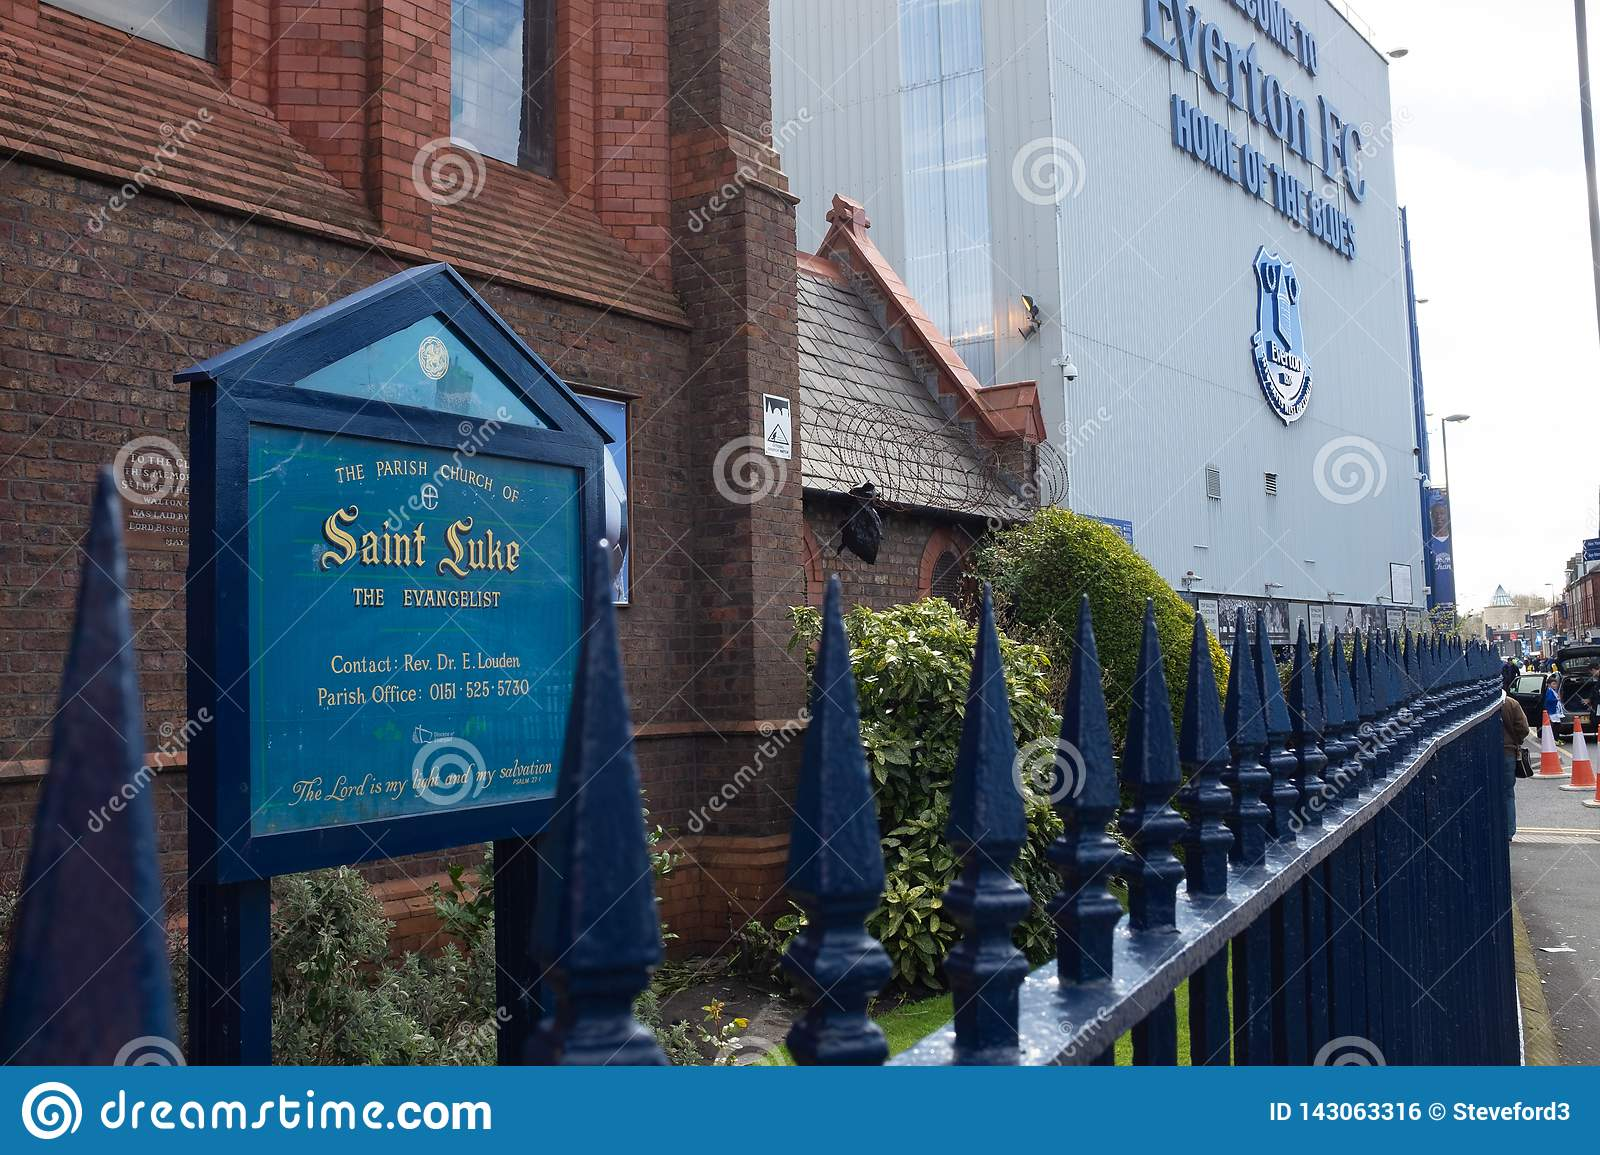 Everton, Liverpool, Reino Unido, abril, 17, 2016: La iglesia de St Luke al lado de Everton Football Club, estadio del parque de G